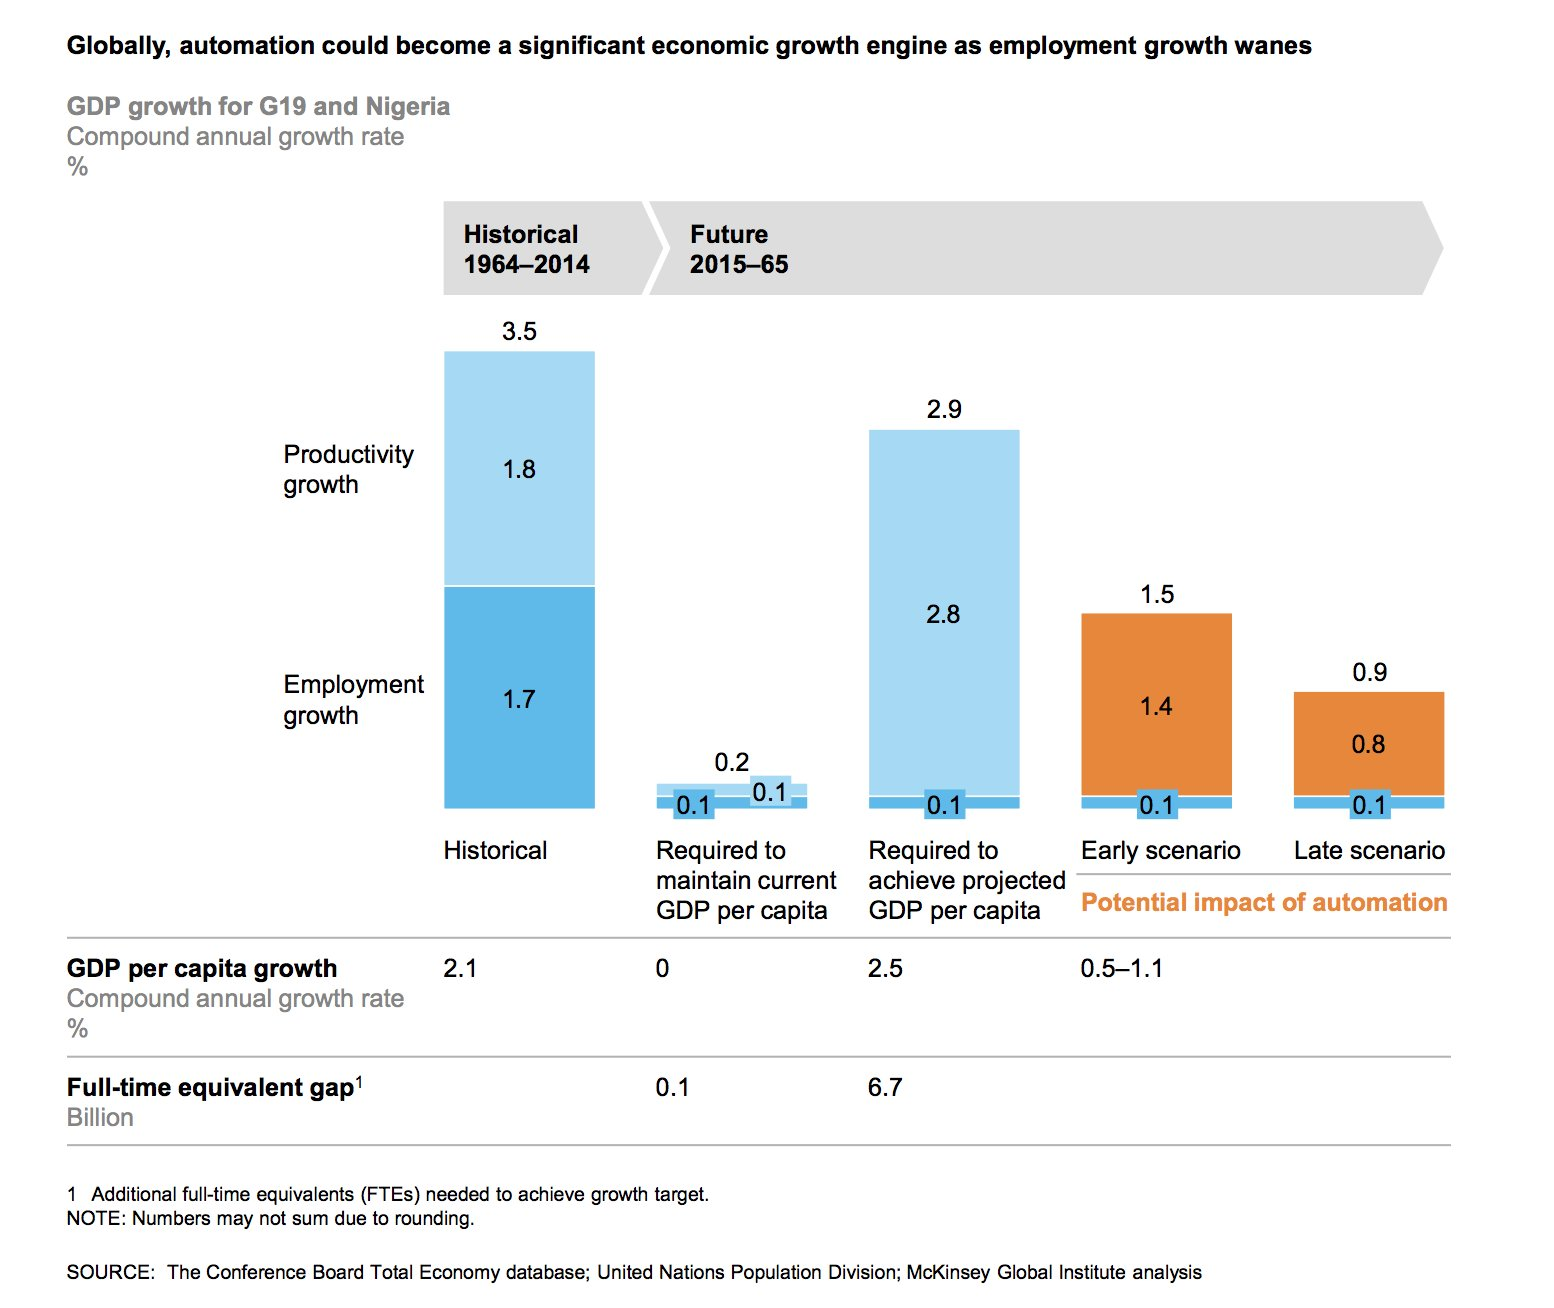 Automation could become global growth engine. 1,4% worldwide GDP growth out of automation @McKinsey #automation #ArtificialIntelligence